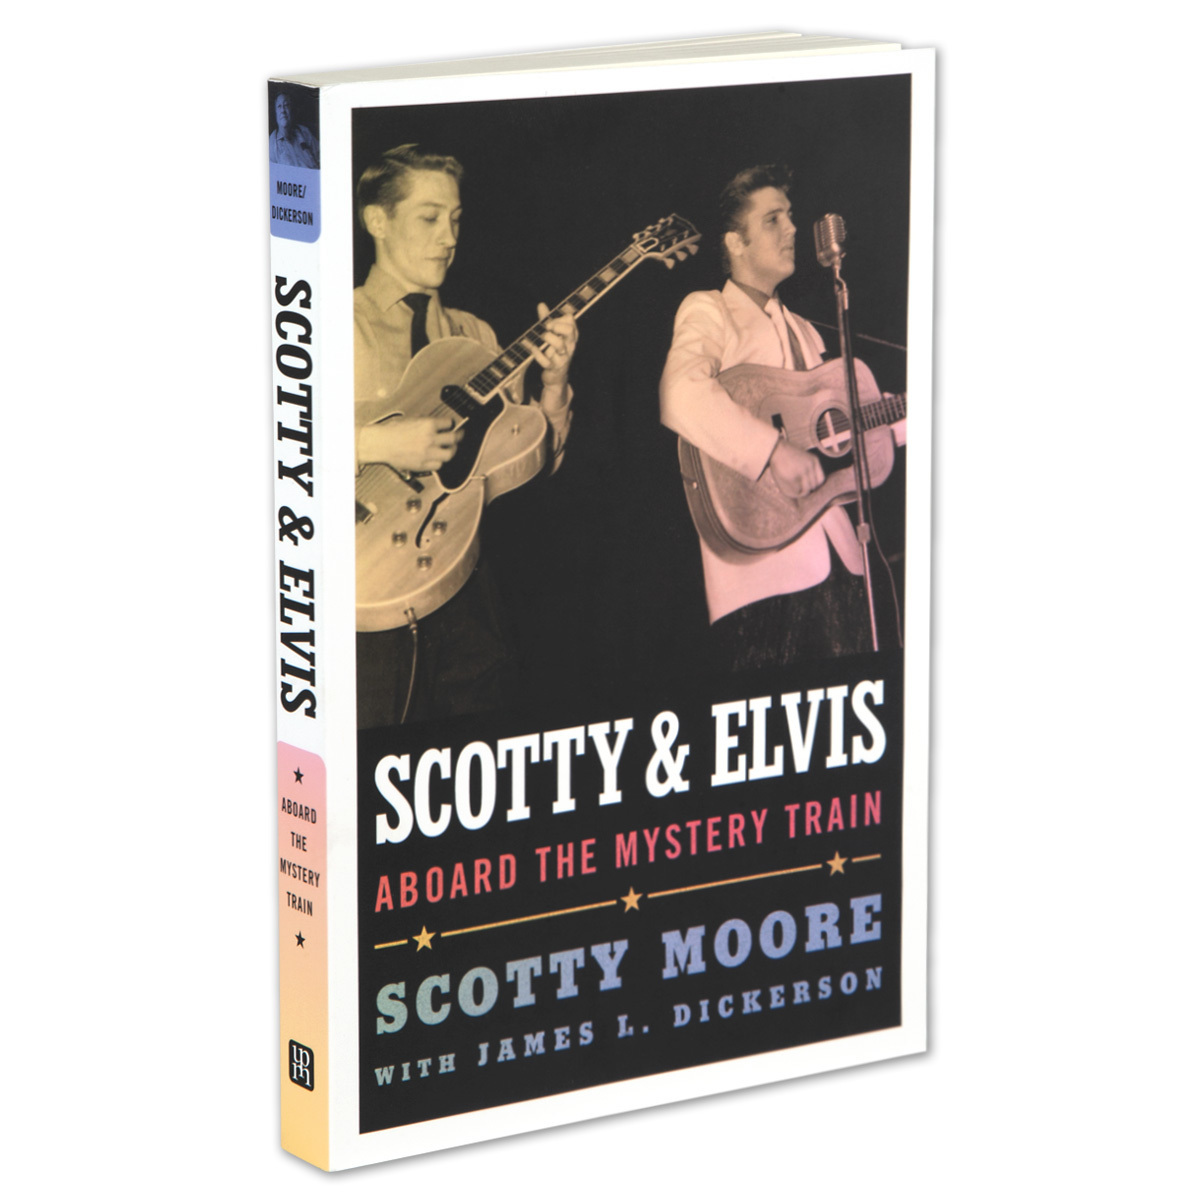 Scotty and Elvis: Aboard the Mystery Train Paperback Book